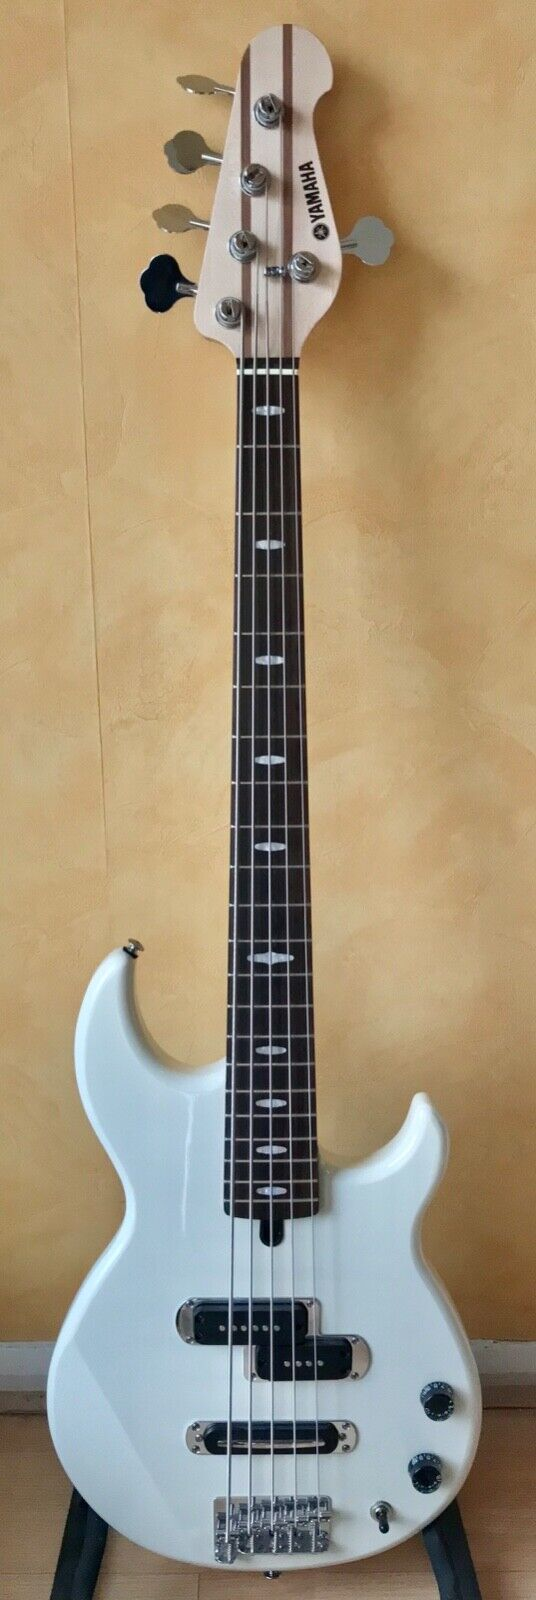 Image 1 - Yamaha BB425 5 string bass guitar in Vintage White. (SPARES / REPAIR ONLY)